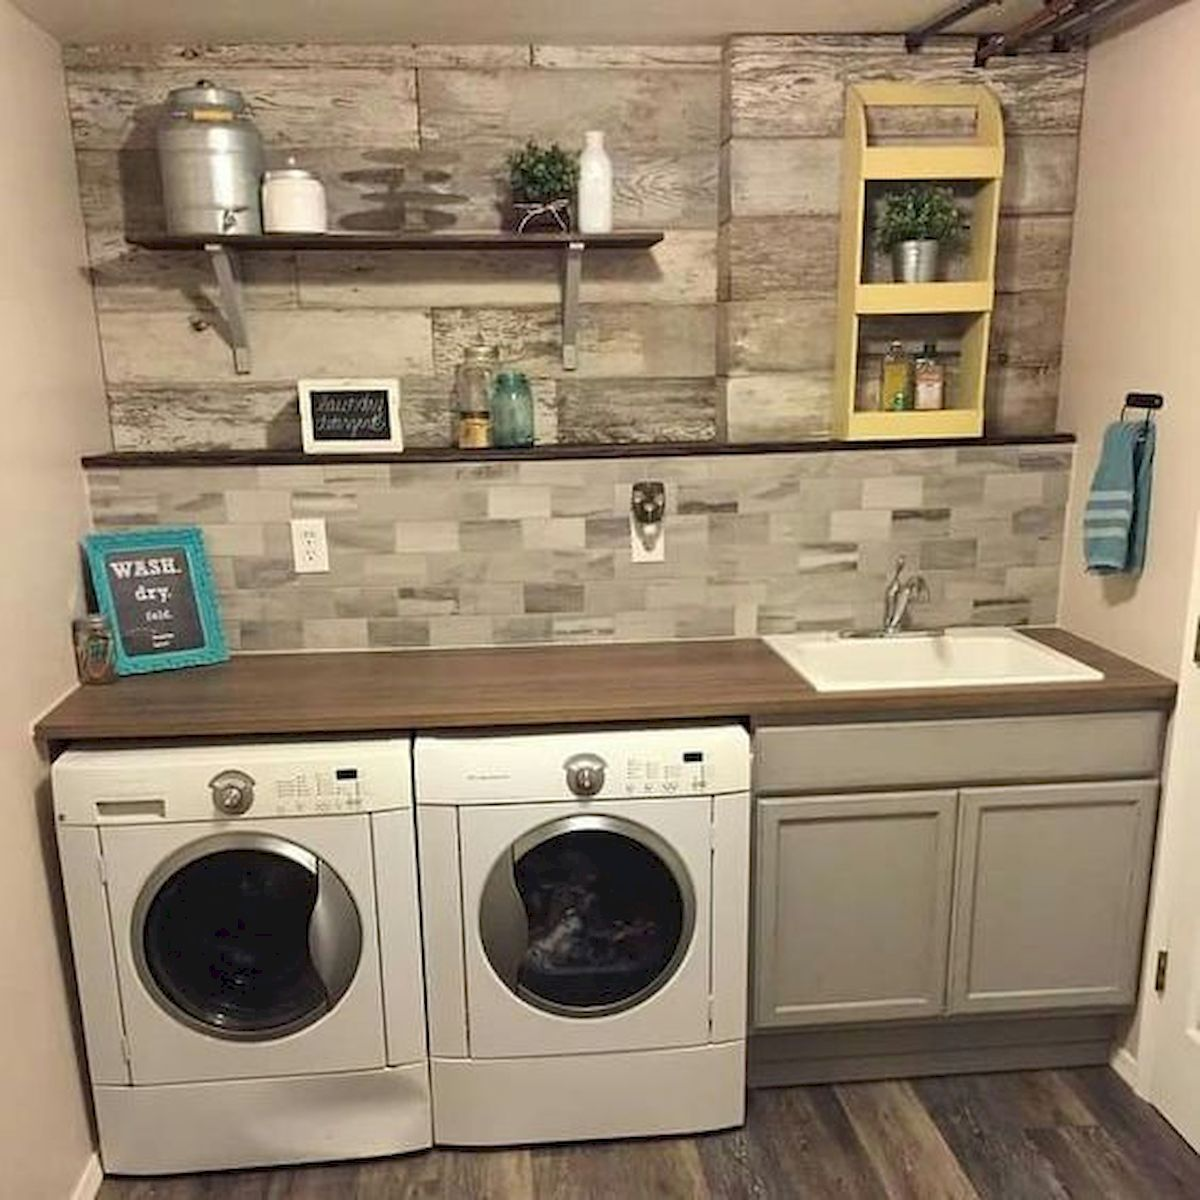 55 Gorgeous Laundry Room Design Ideas And Decorations